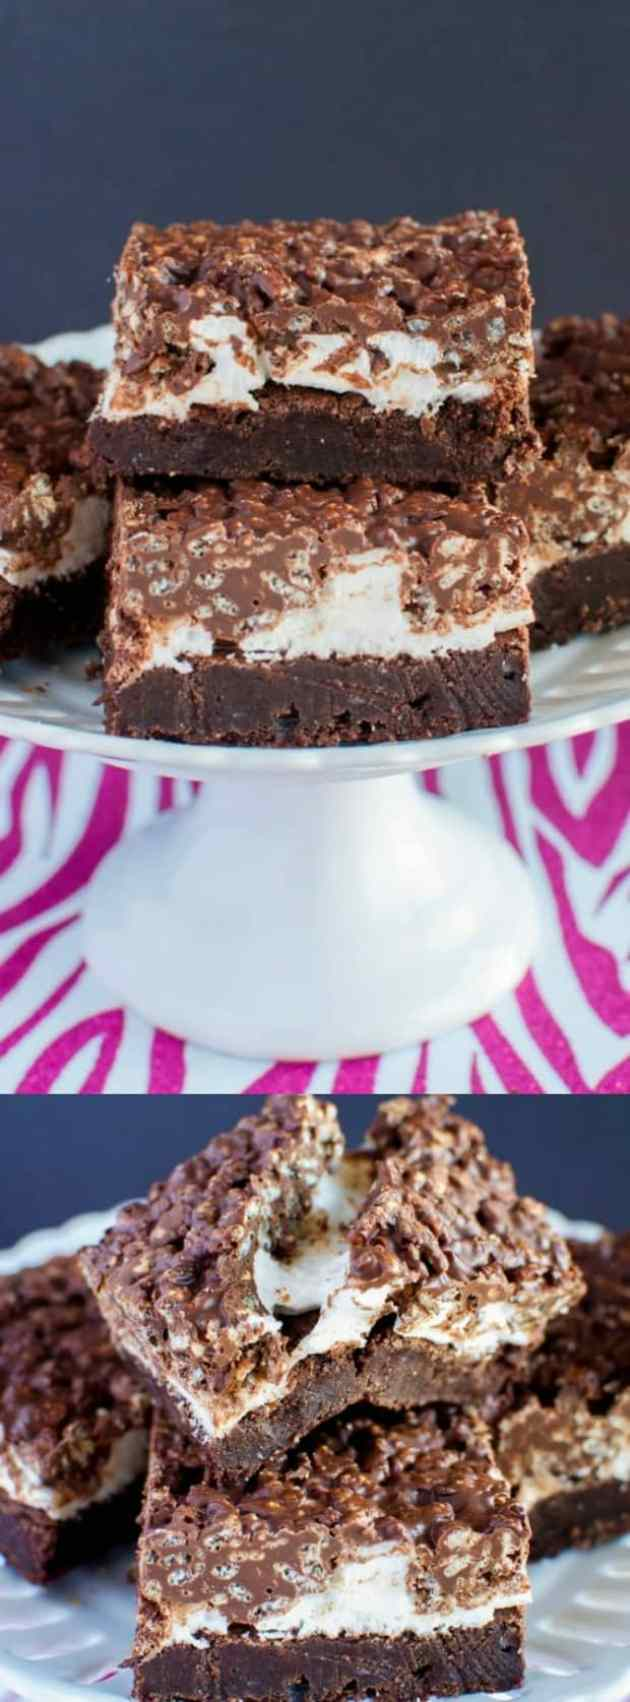 Marshmallow Fudge Crunch Brownies Longpin